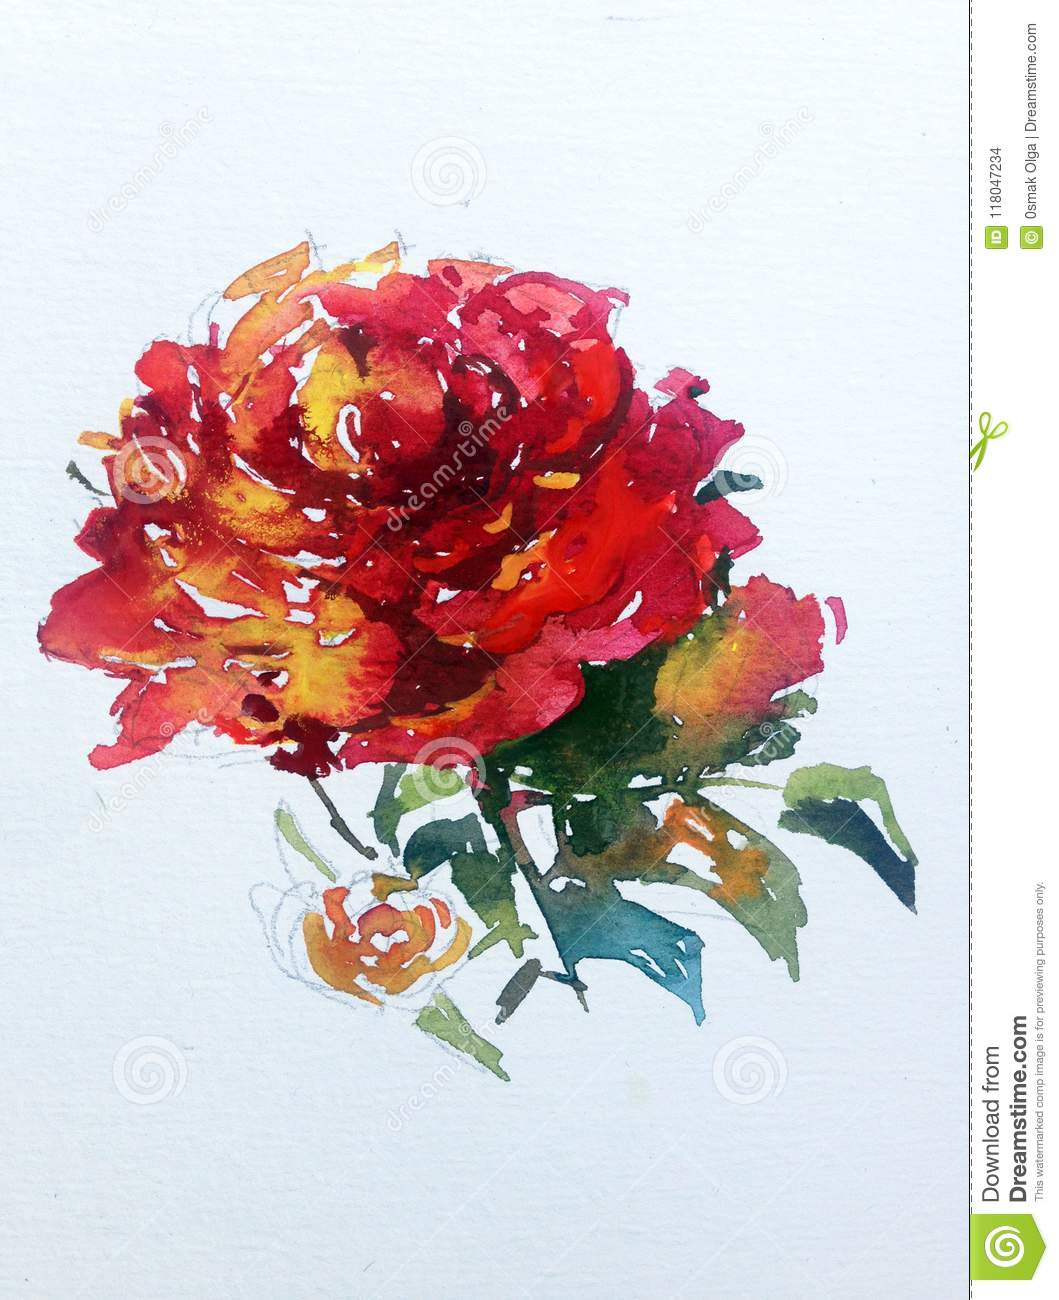 Watercolor Abstract Background Floral Flower Red Rose Beauty